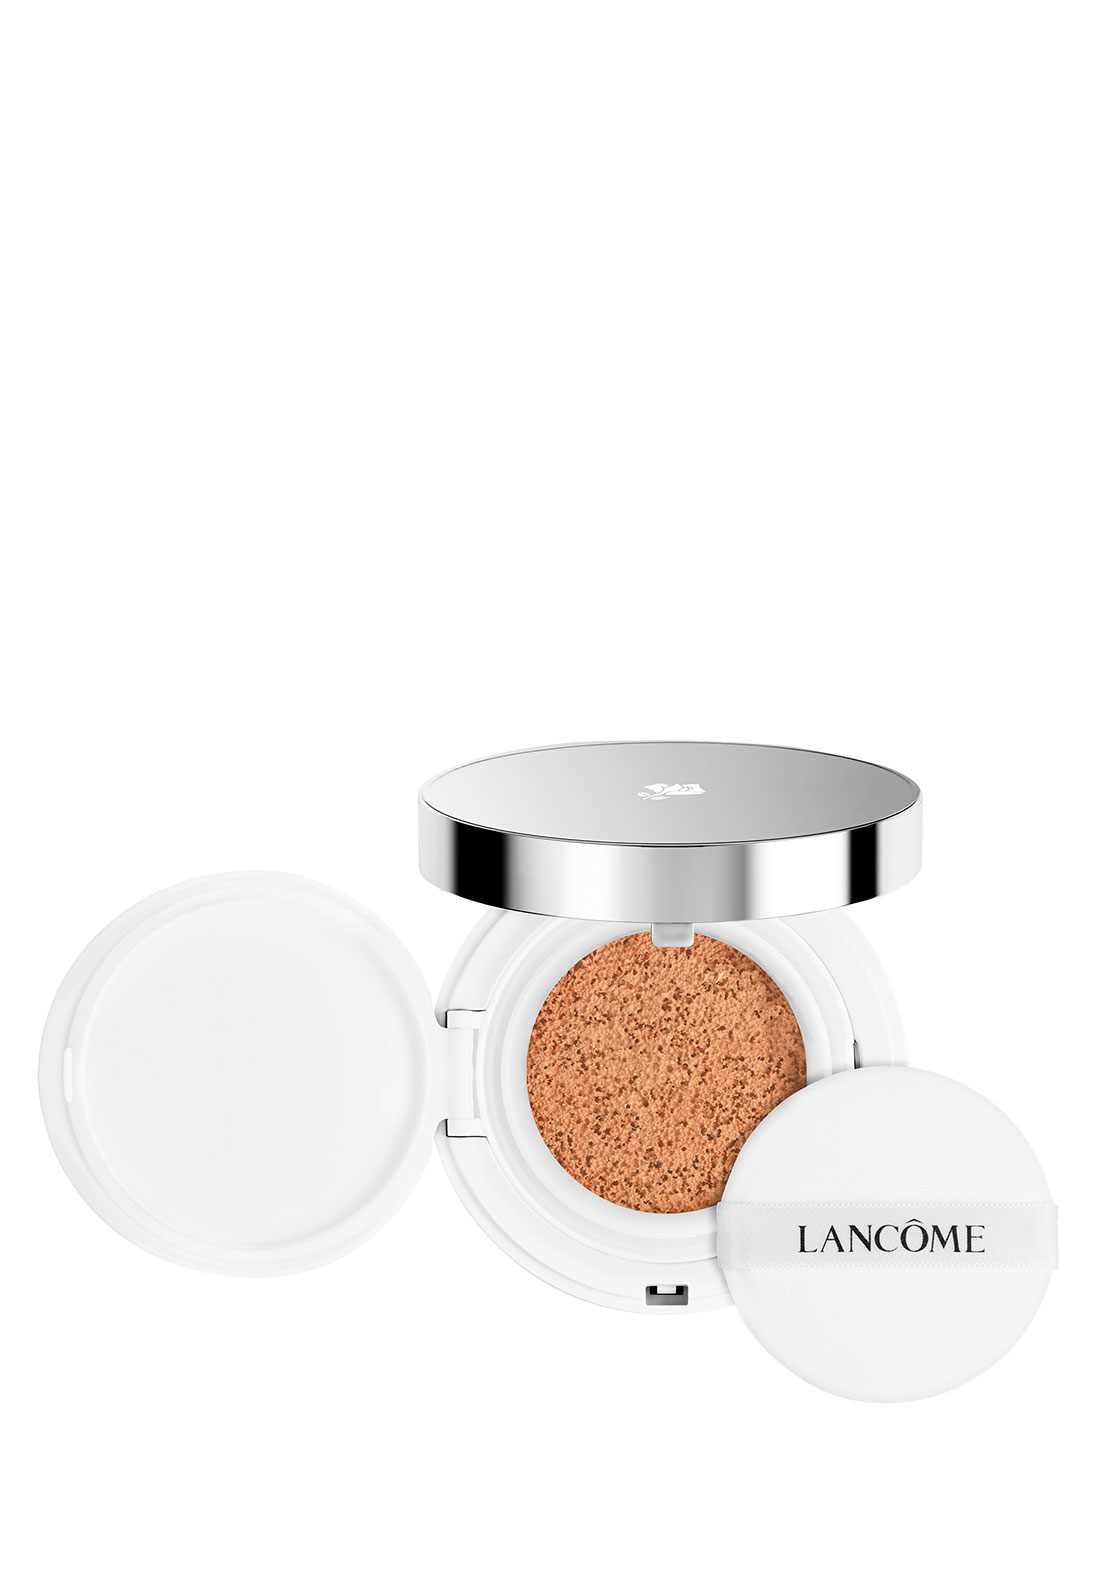 Lancome Miracle Cushion Compact Foundation, Beige Dore